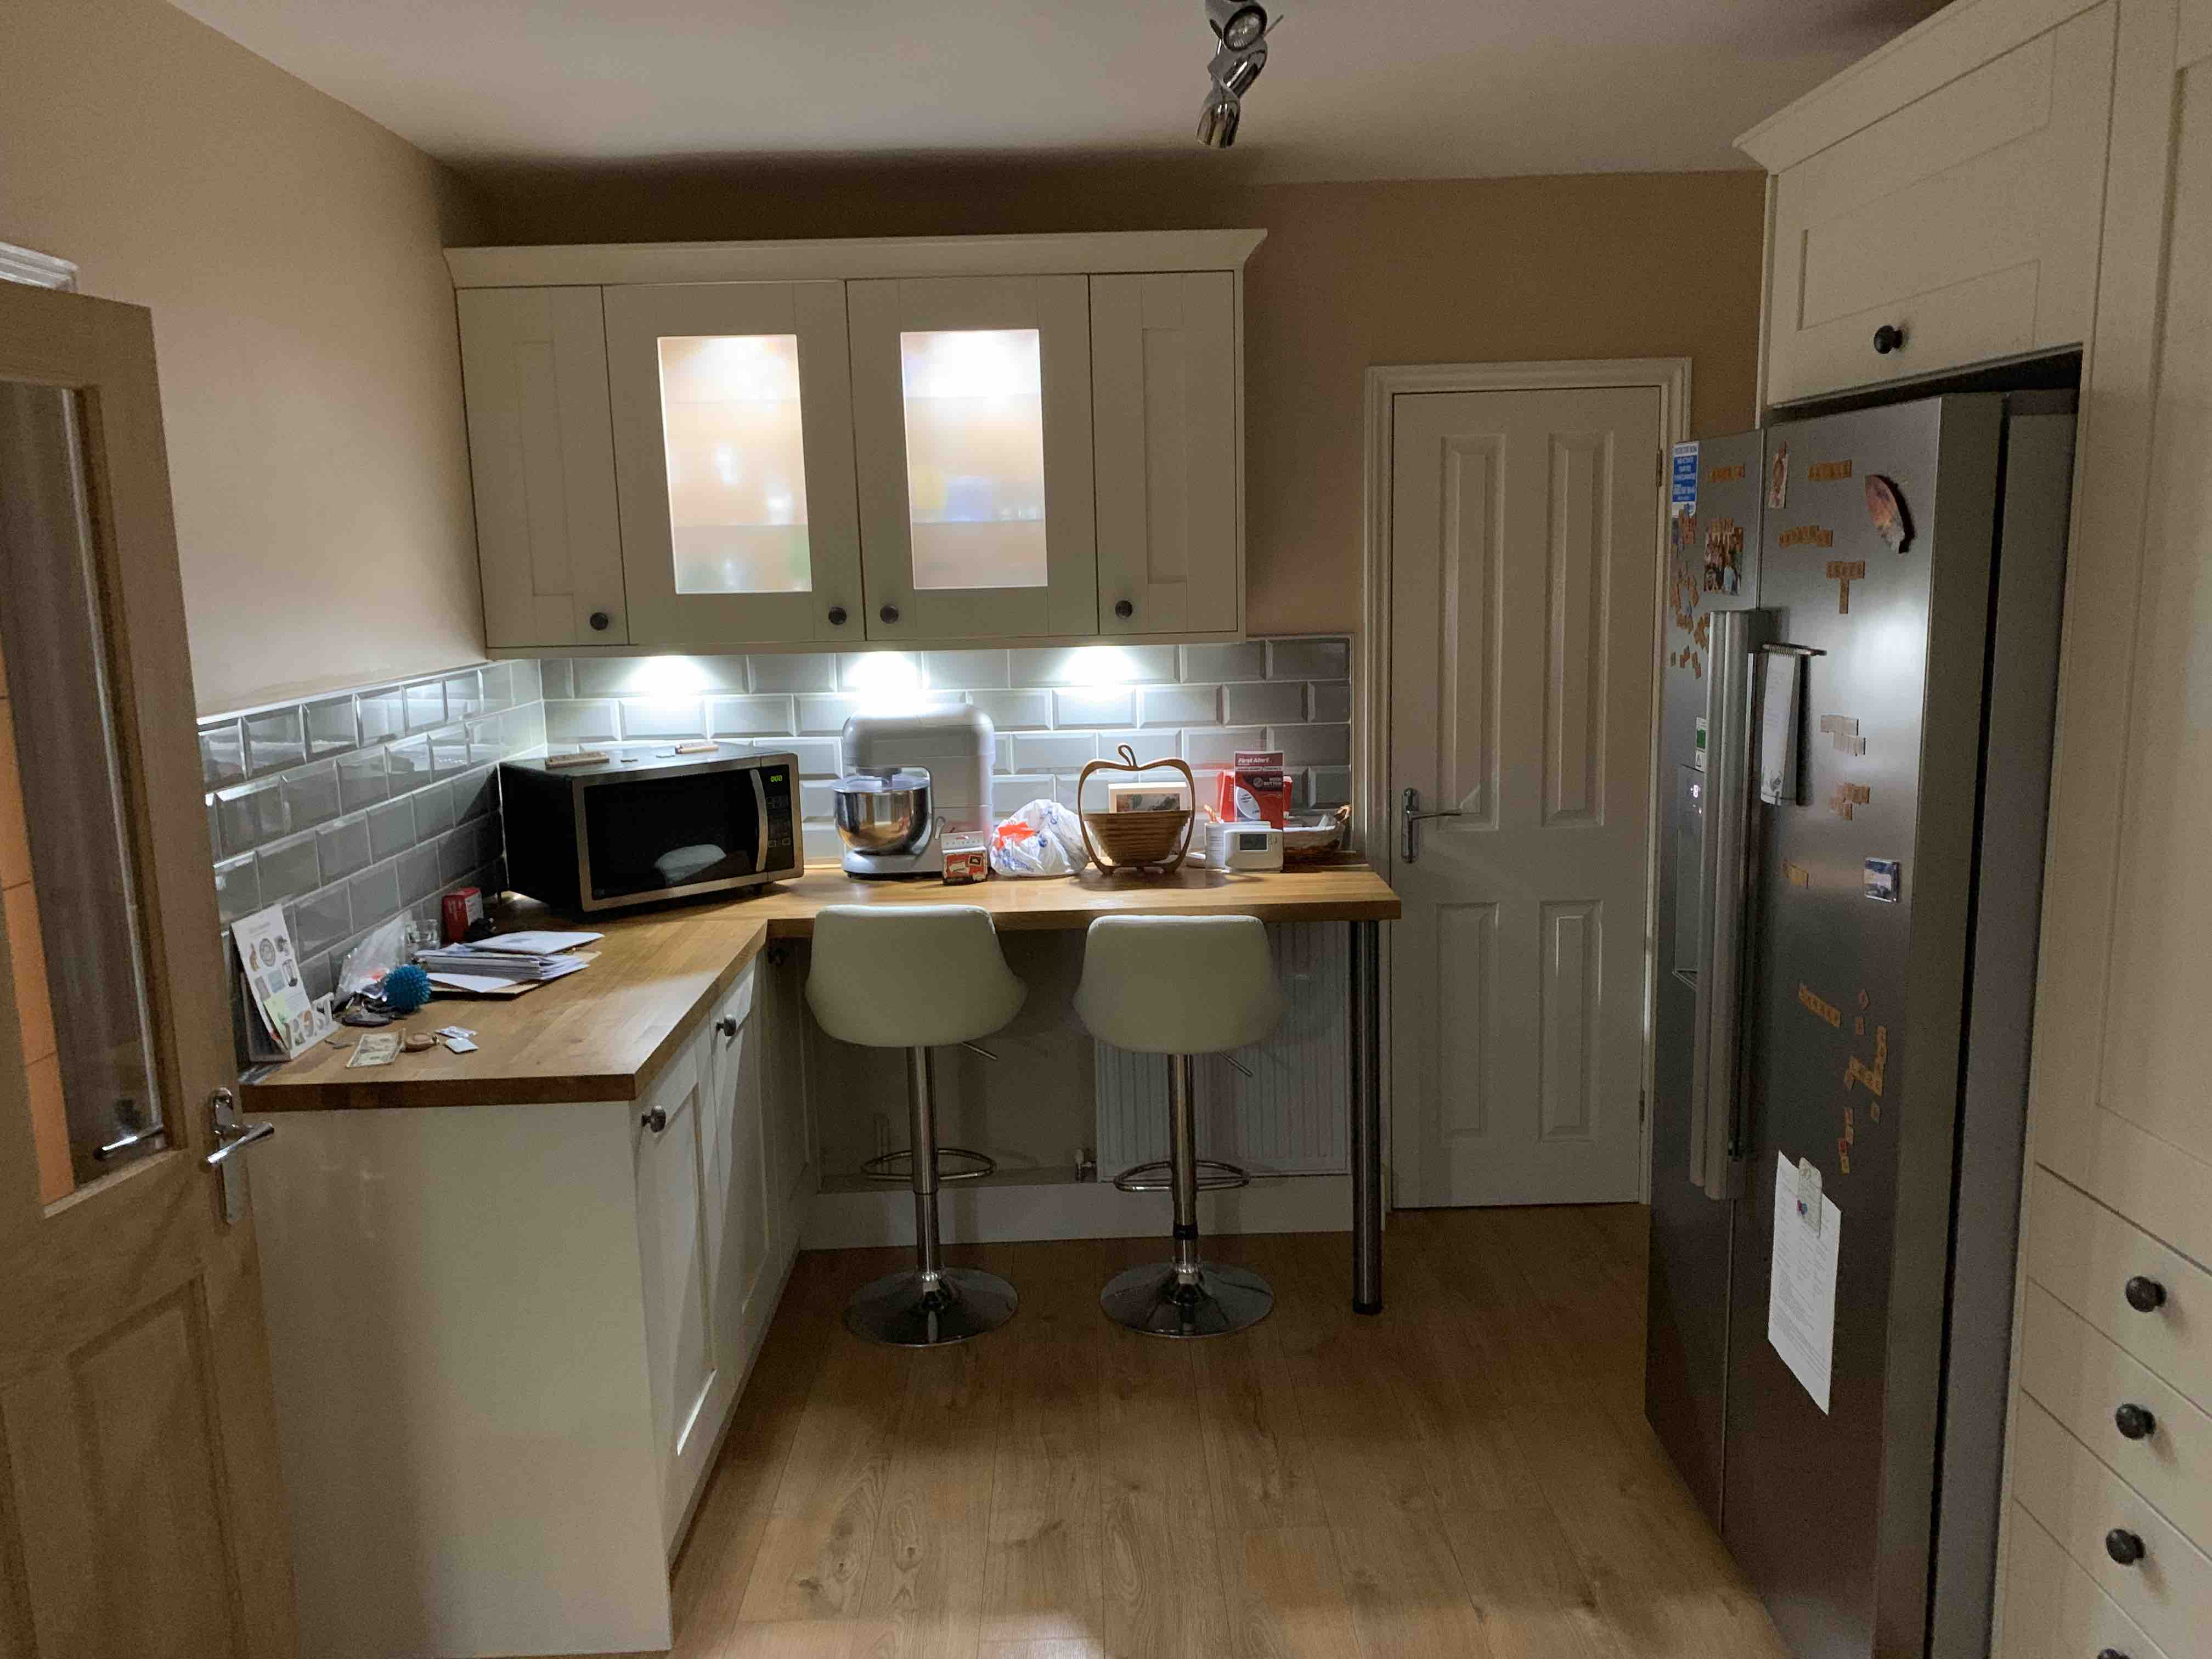 1 room in Dunstable, Dunstable, LU6 3PD RoomsLocal image